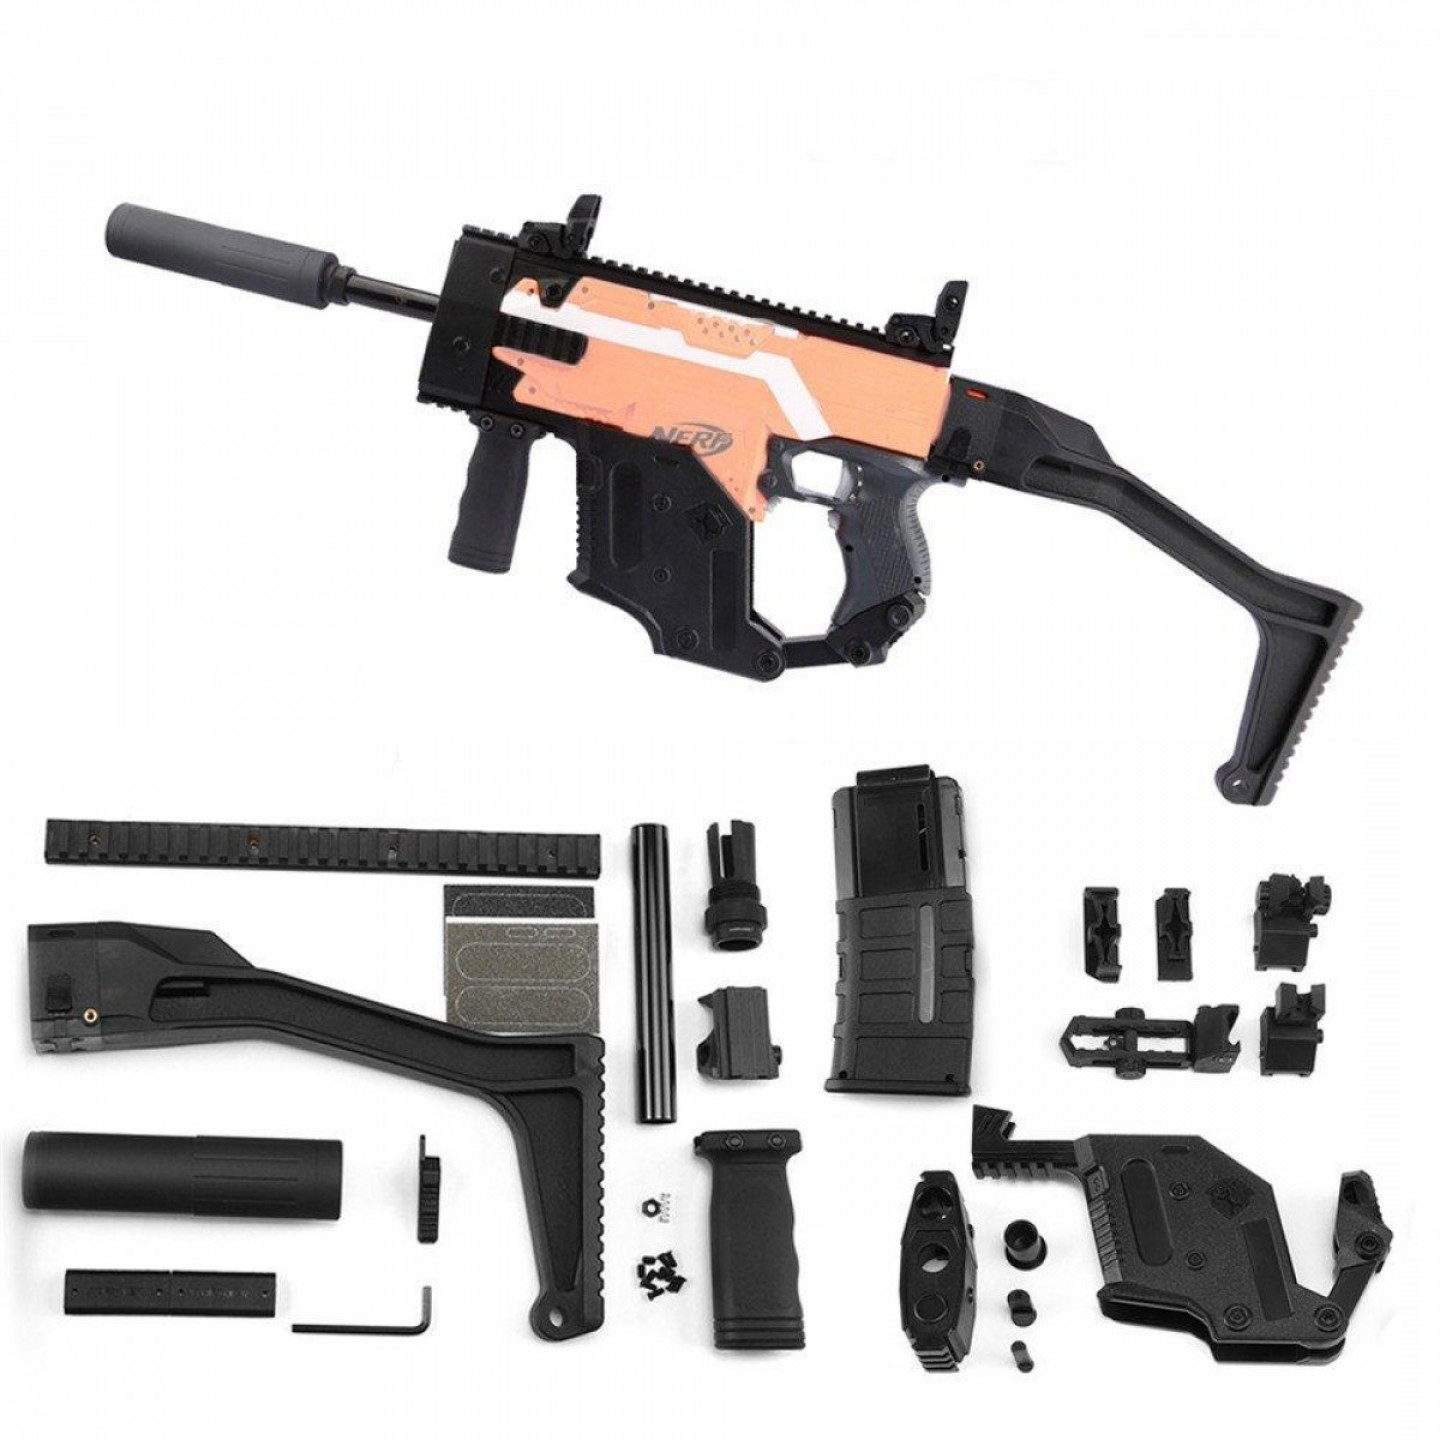 Vector Kriss Scope: Worker Mod Kriss Vector Imitation Kit Items W Tactical Quick Deploy Flip Up Scope Part For Nerf P